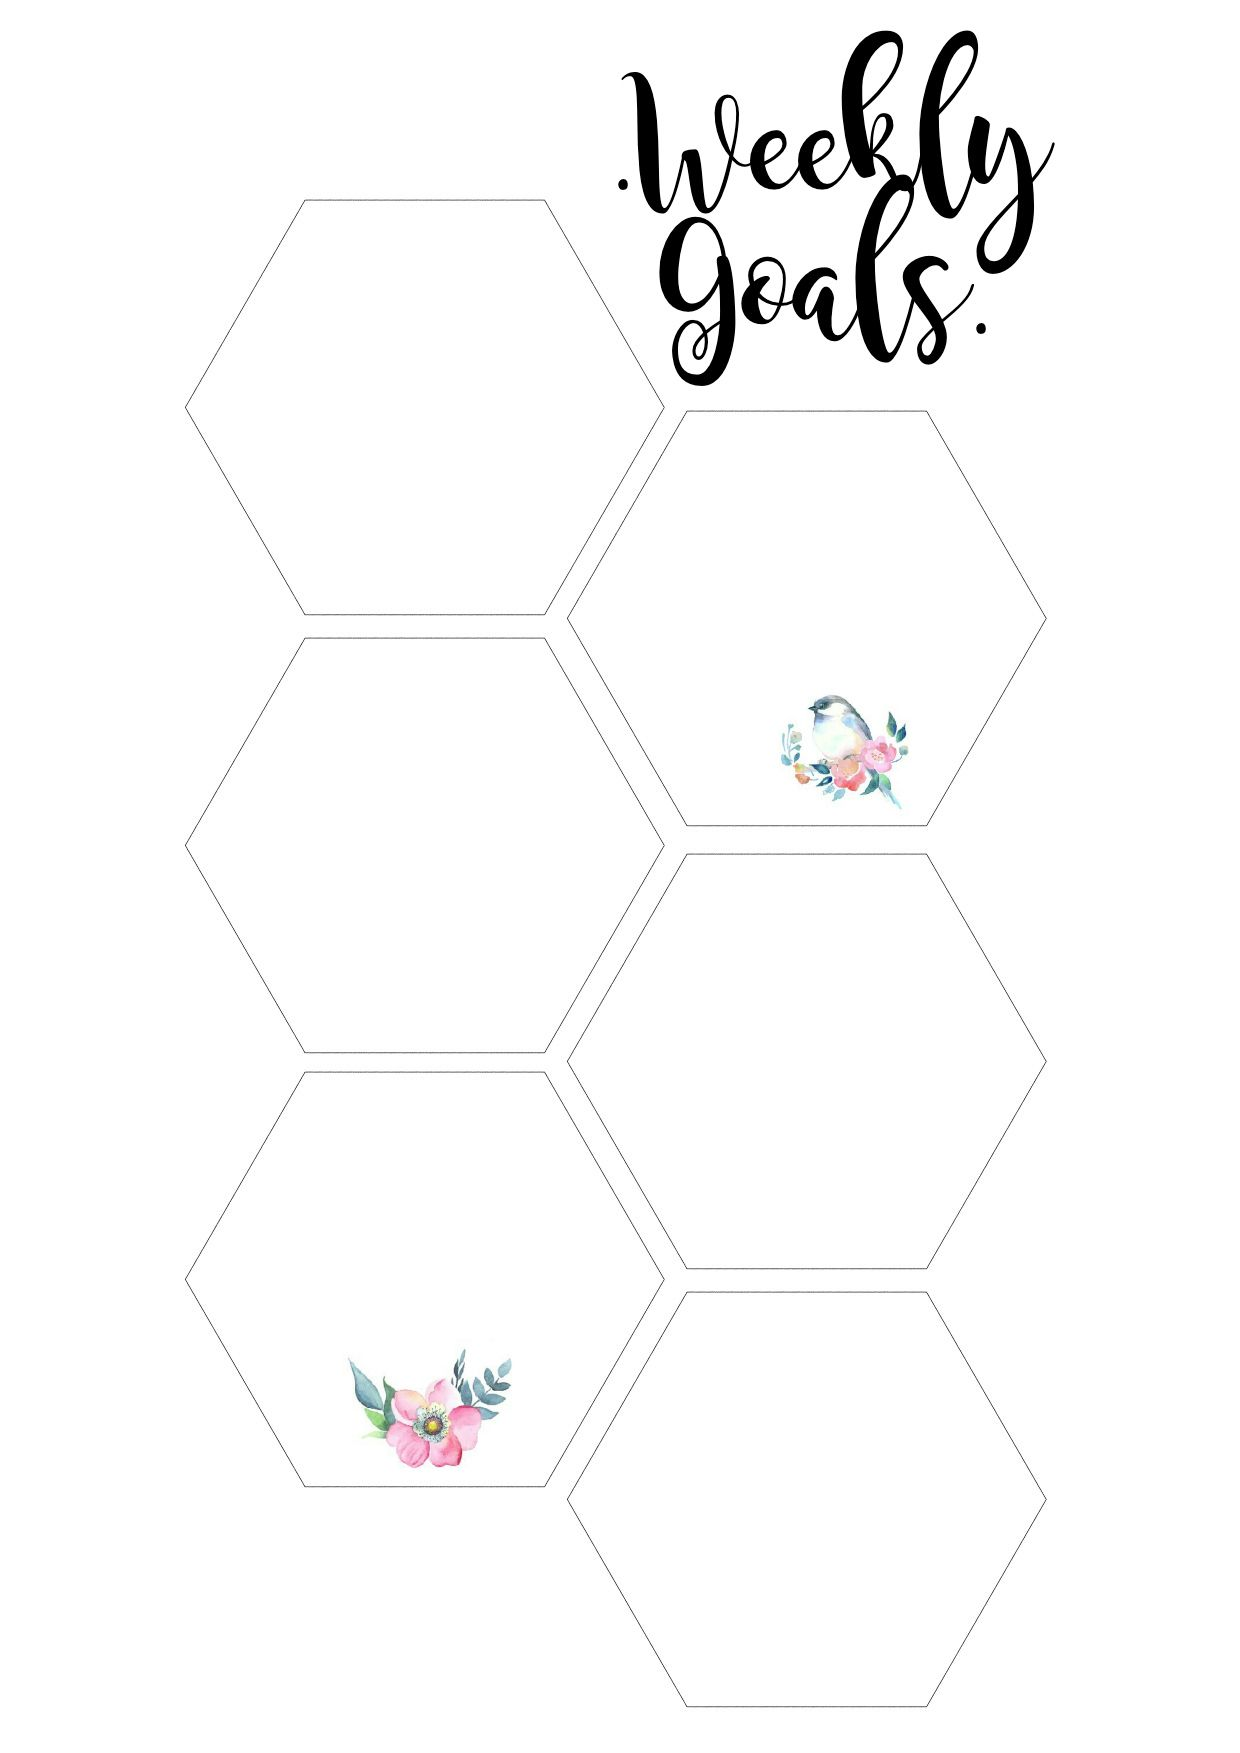 Weekly Goals Amp To Do List For Your Planner